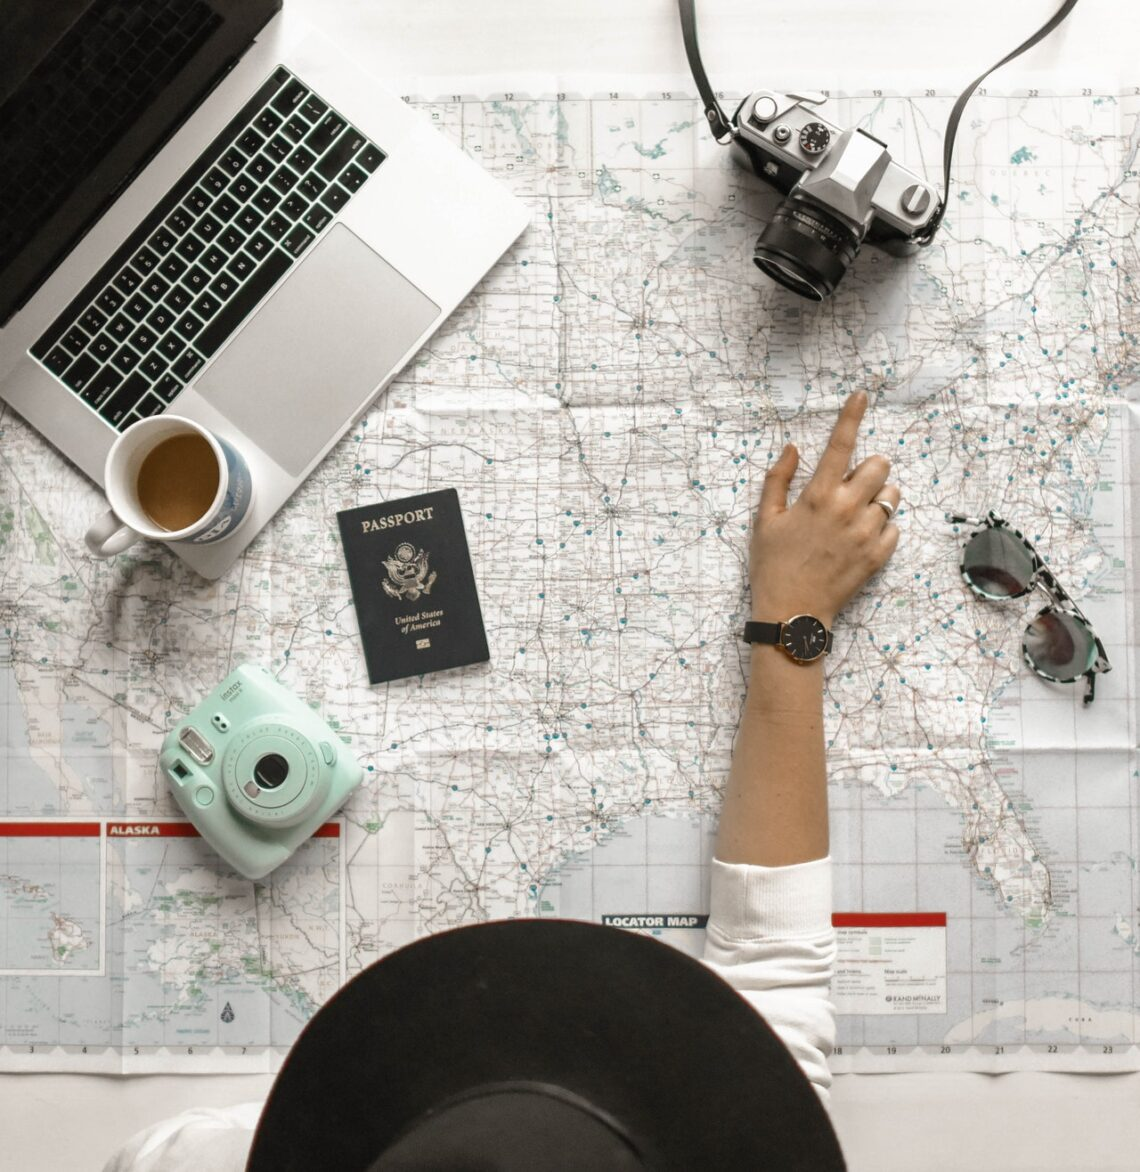 Best Travel Video Ideas and Makers to Be Inspired